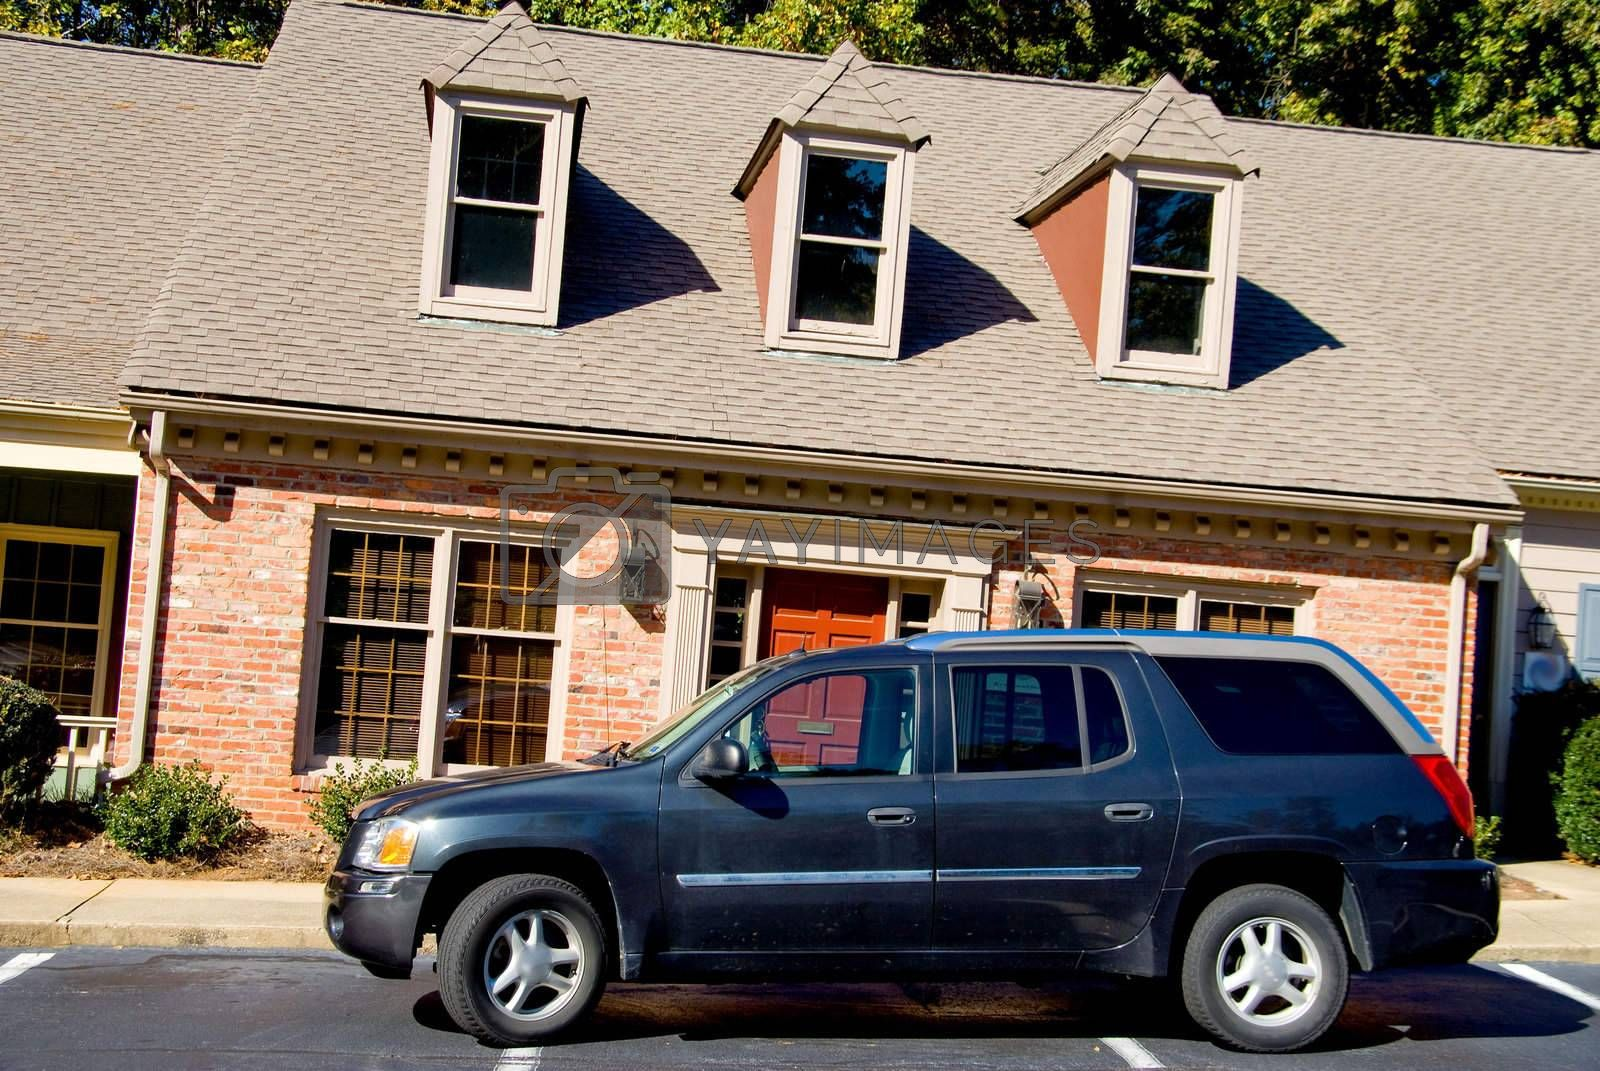 An SUV parked in fron of a leaning apartment building.